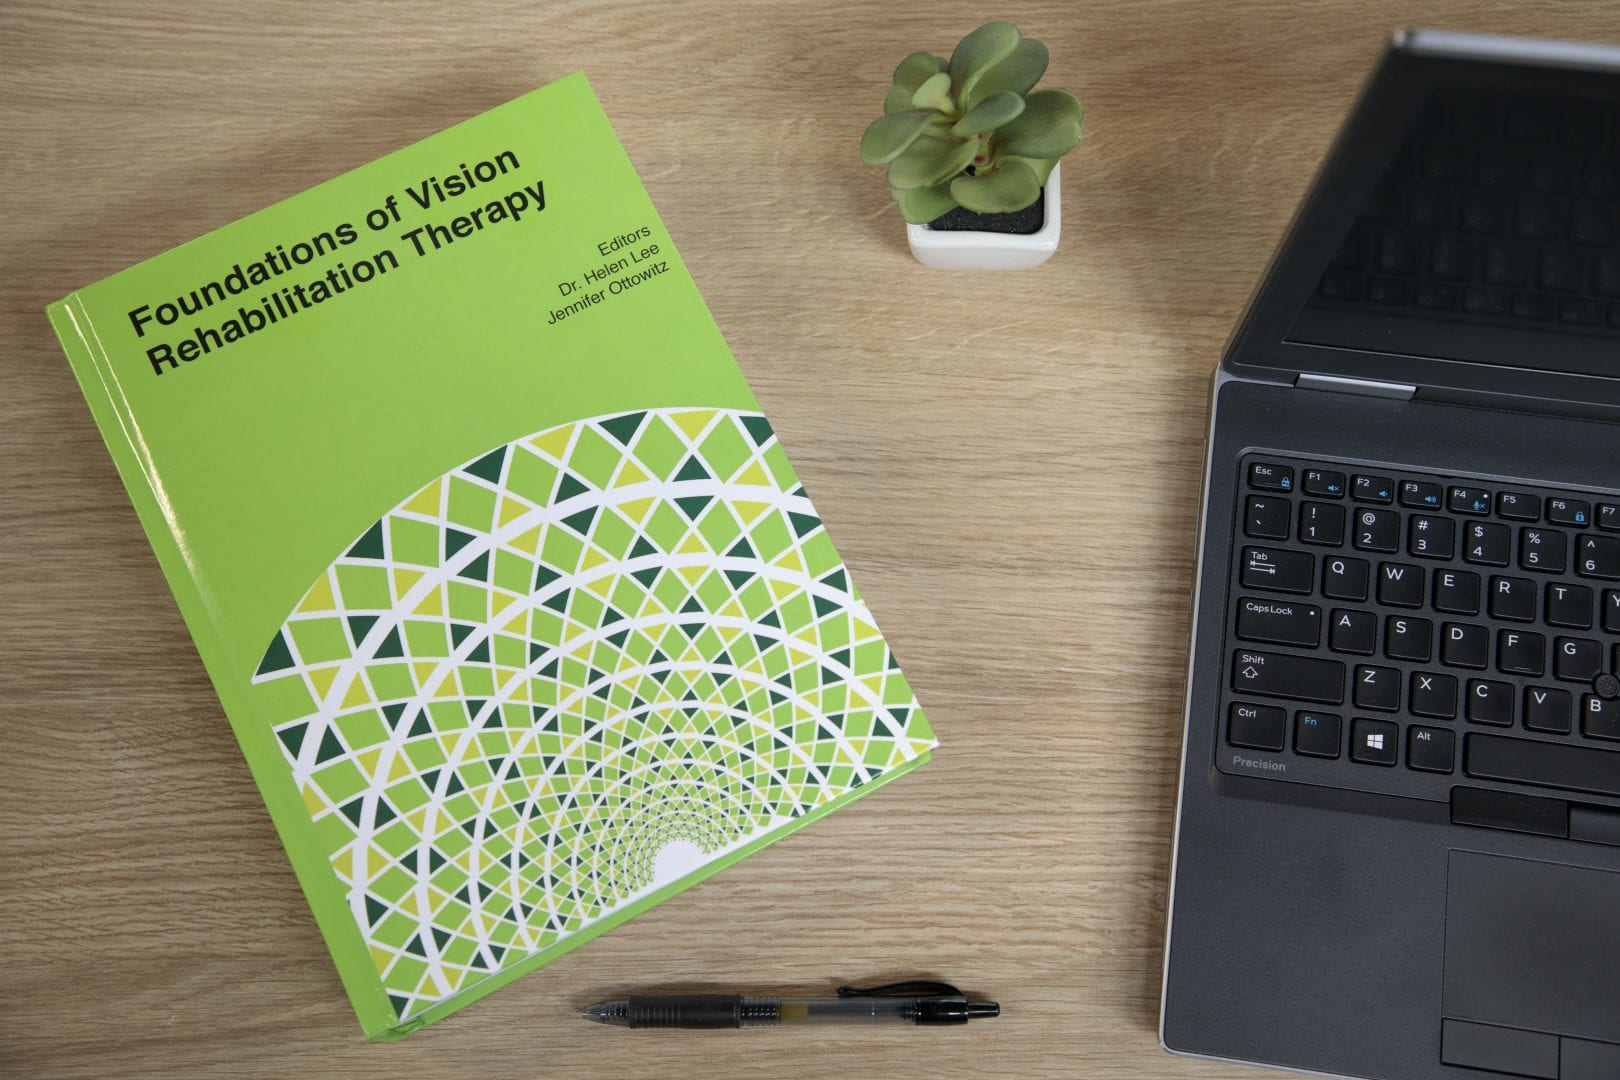 "a green book titled ""Foundations of Vision Rehabilitation Therapy"" lays on a table top next to a plant, pen, and laptop computer"